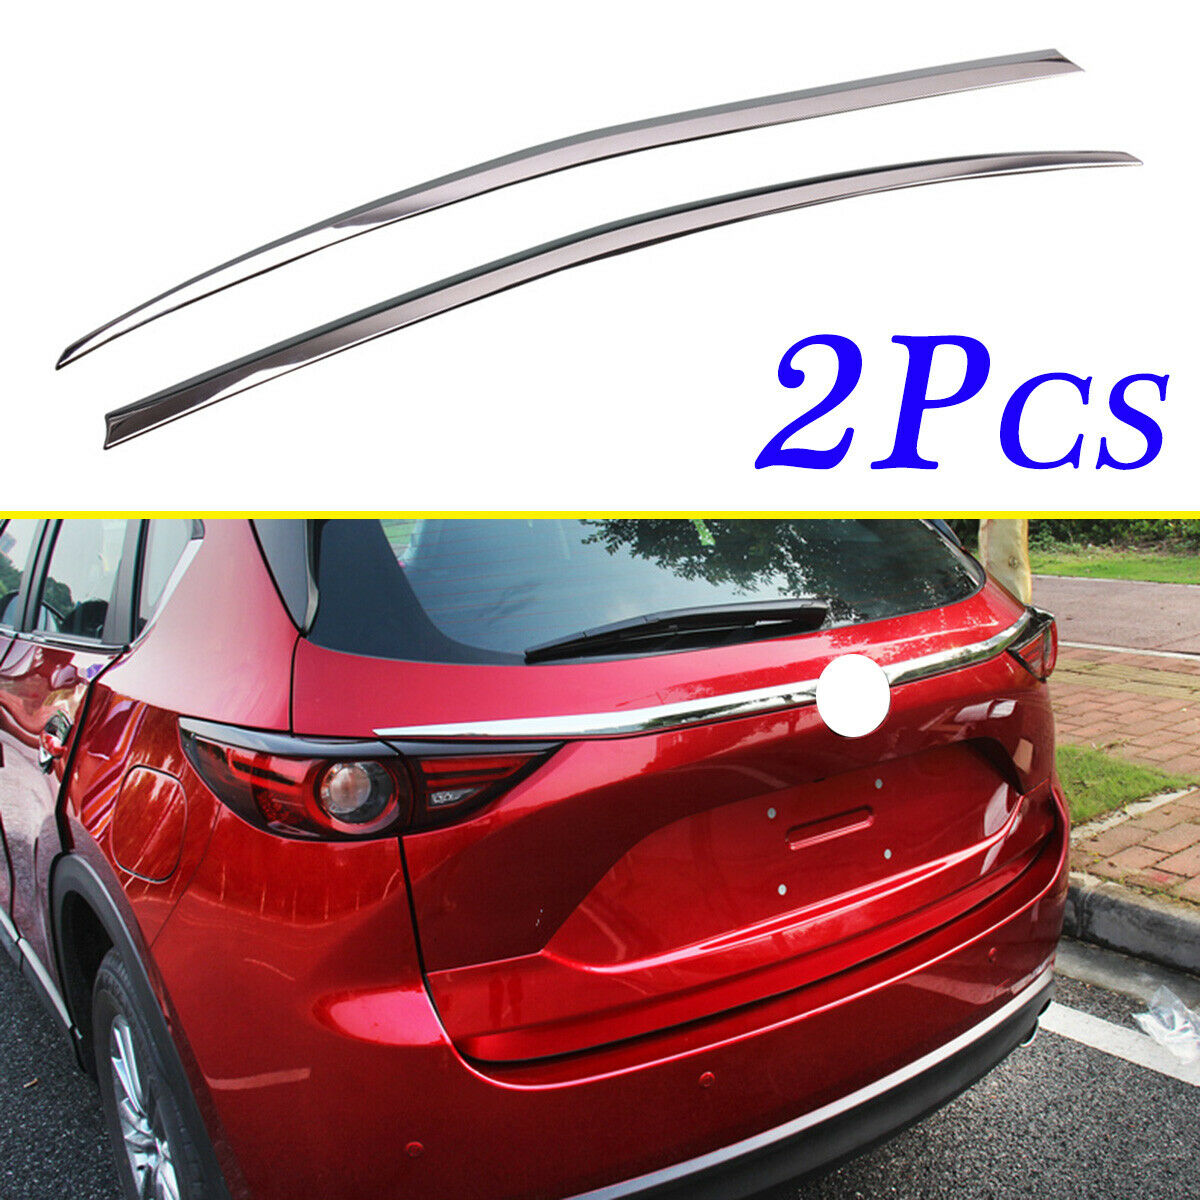 2pcs Chrome ABS Tailgate Rear Truck Stripes Cover Trim Fit For <font><b>Mazda</b></font> CX5 <font><b>CX</b></font>-5 KF <font><b>2017</b></font> 2018 <font><b>2019</b></font> Accessories Exterior Molding image